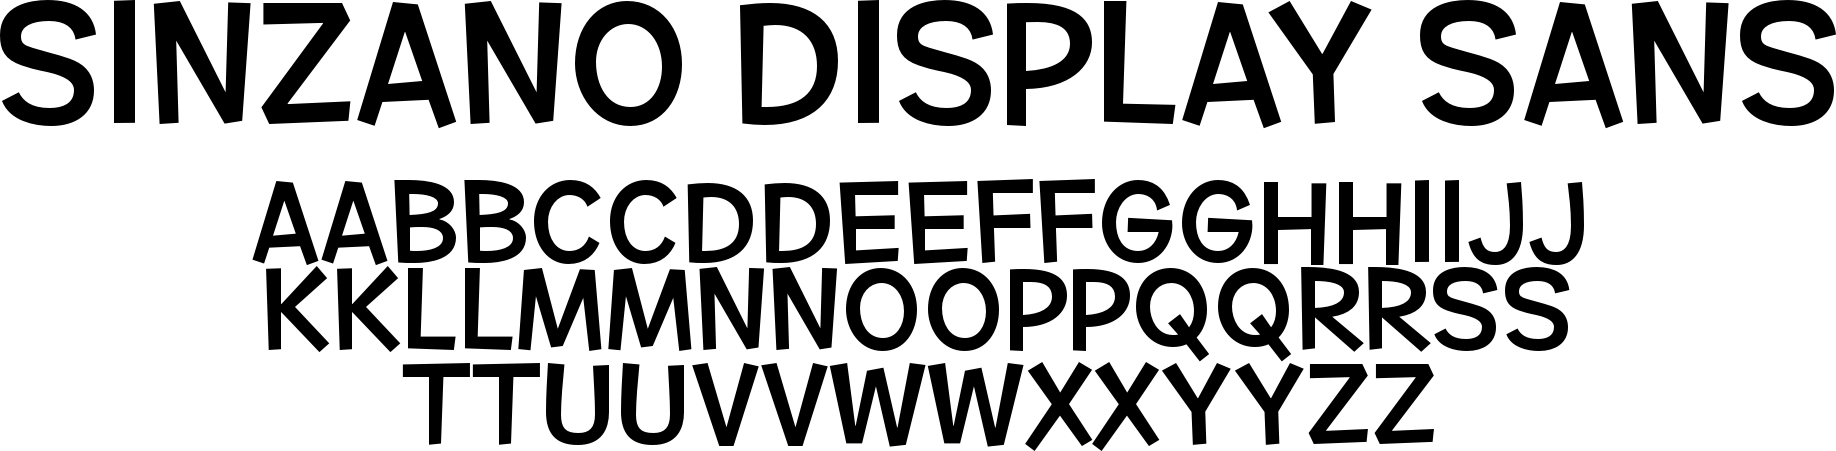 Sinzano Display Sans